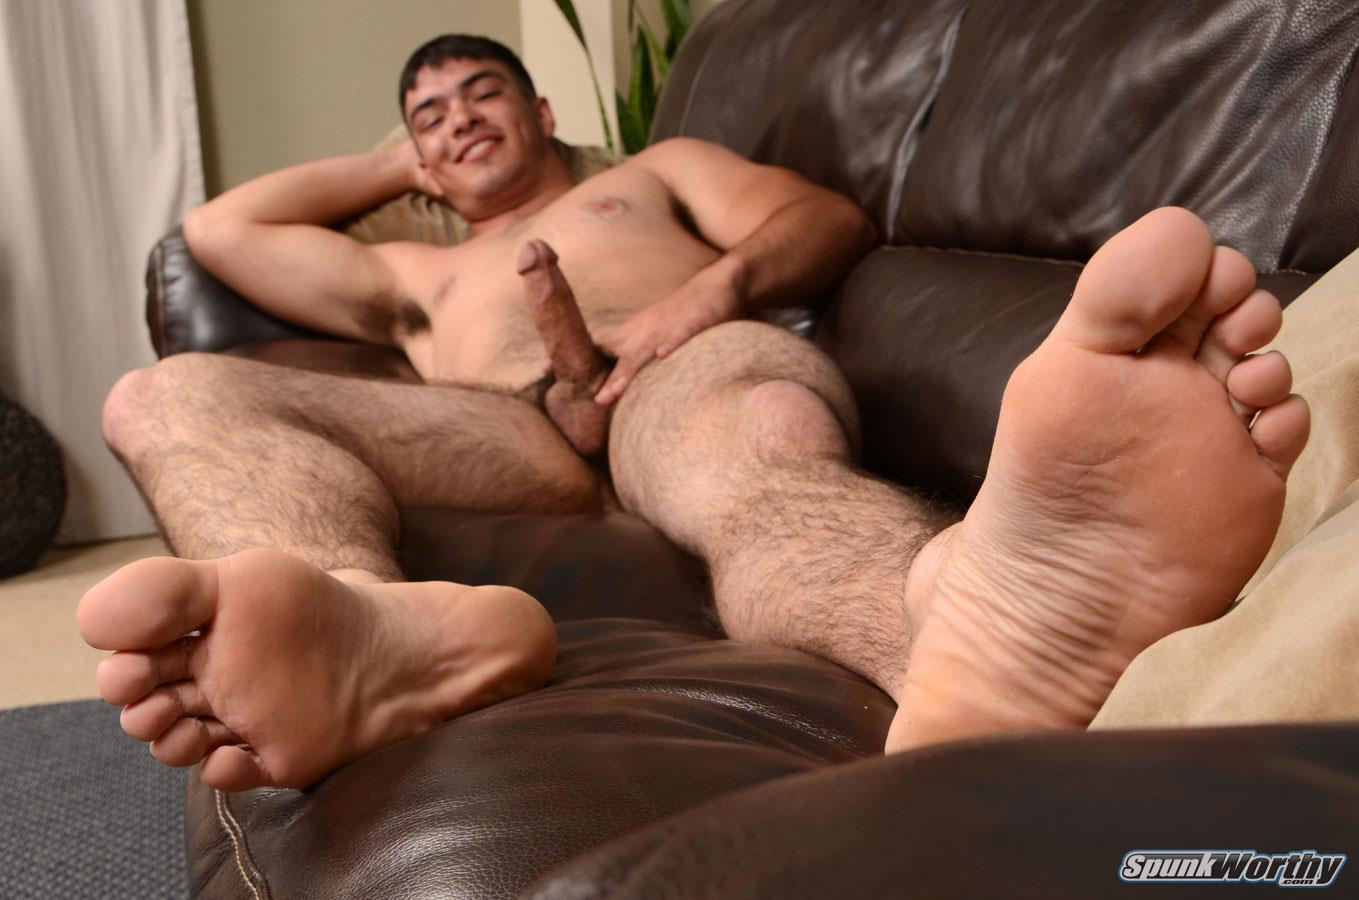 SpunkWorthy Nevin Hairy Young Marine Jerking His Cock Amateur Gay Porn 16 Straight Young Marine From Texas Jerking His Hairy Cock